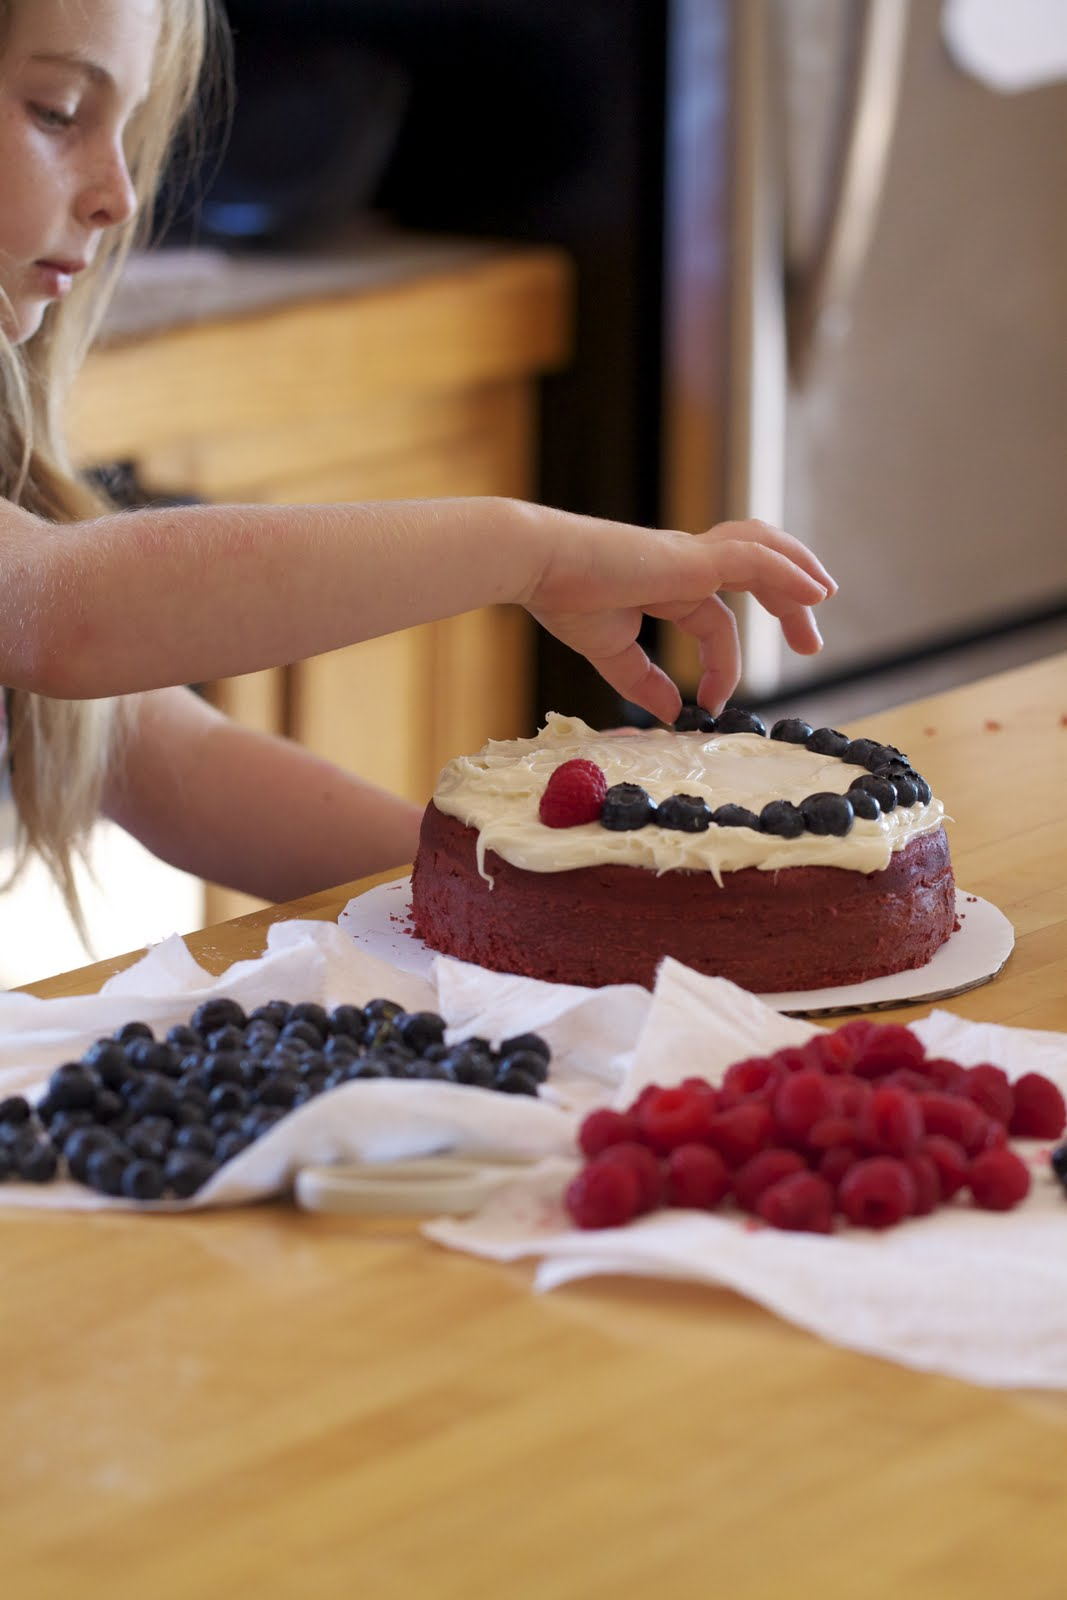 Epicurean Mom: Red Velvet Cake with Raspberries and Blueberries